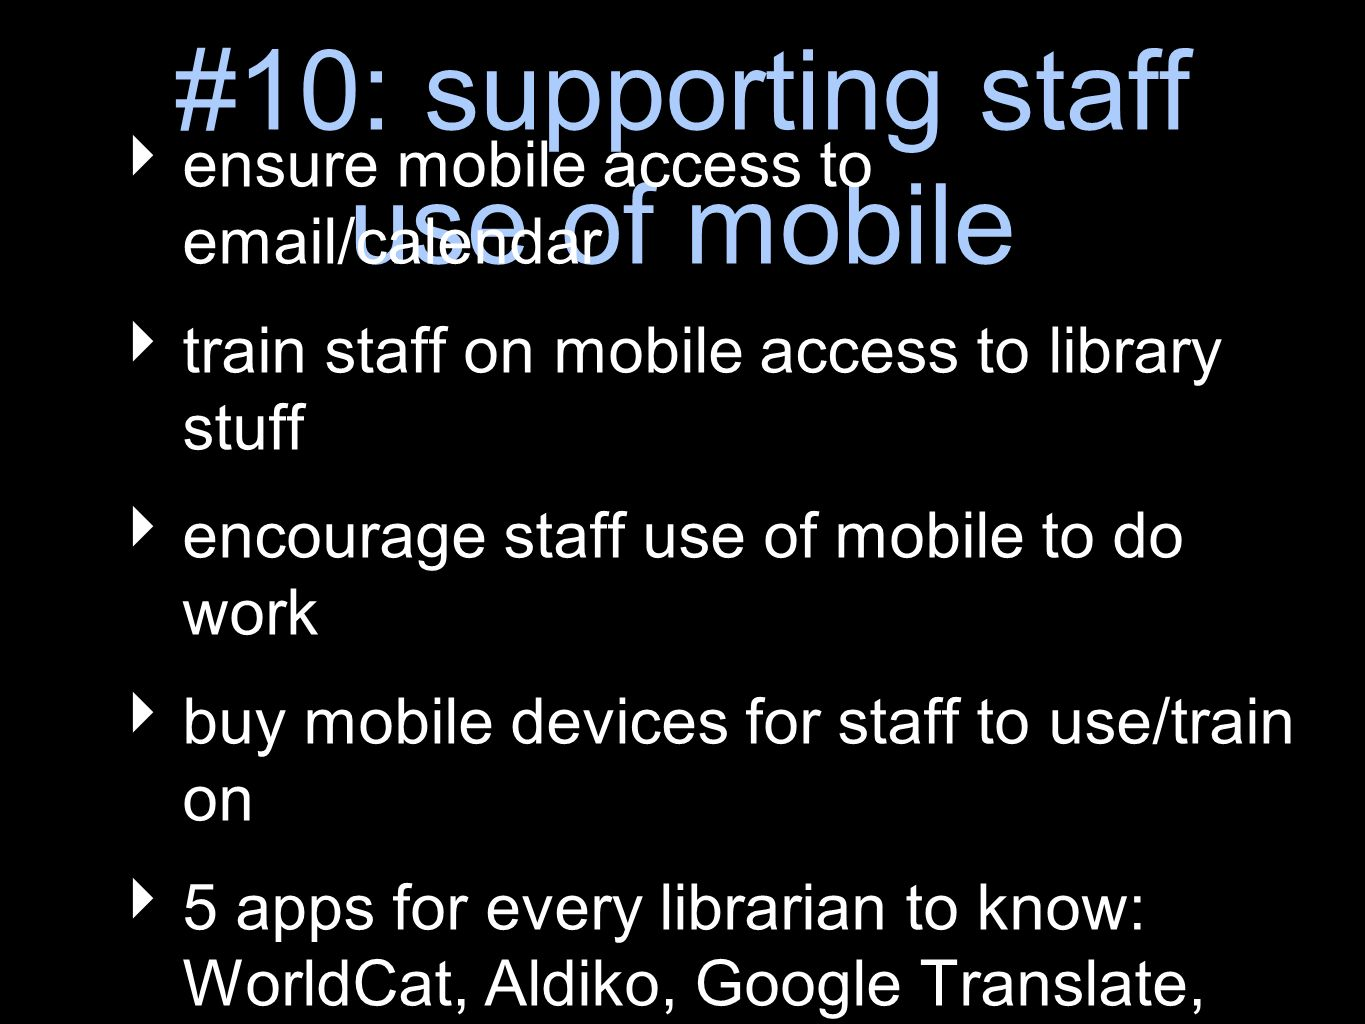 #10: supporting staff use of mobile ensure mobile access to  /calendar train staff on mobile access to library stuff encourage staff use of mobile to do work buy mobile devices for staff to use/train on 5 apps for every librarian to know: WorldCat, Aldiko, Google Translate, ThinkingSpace, & Foursquare